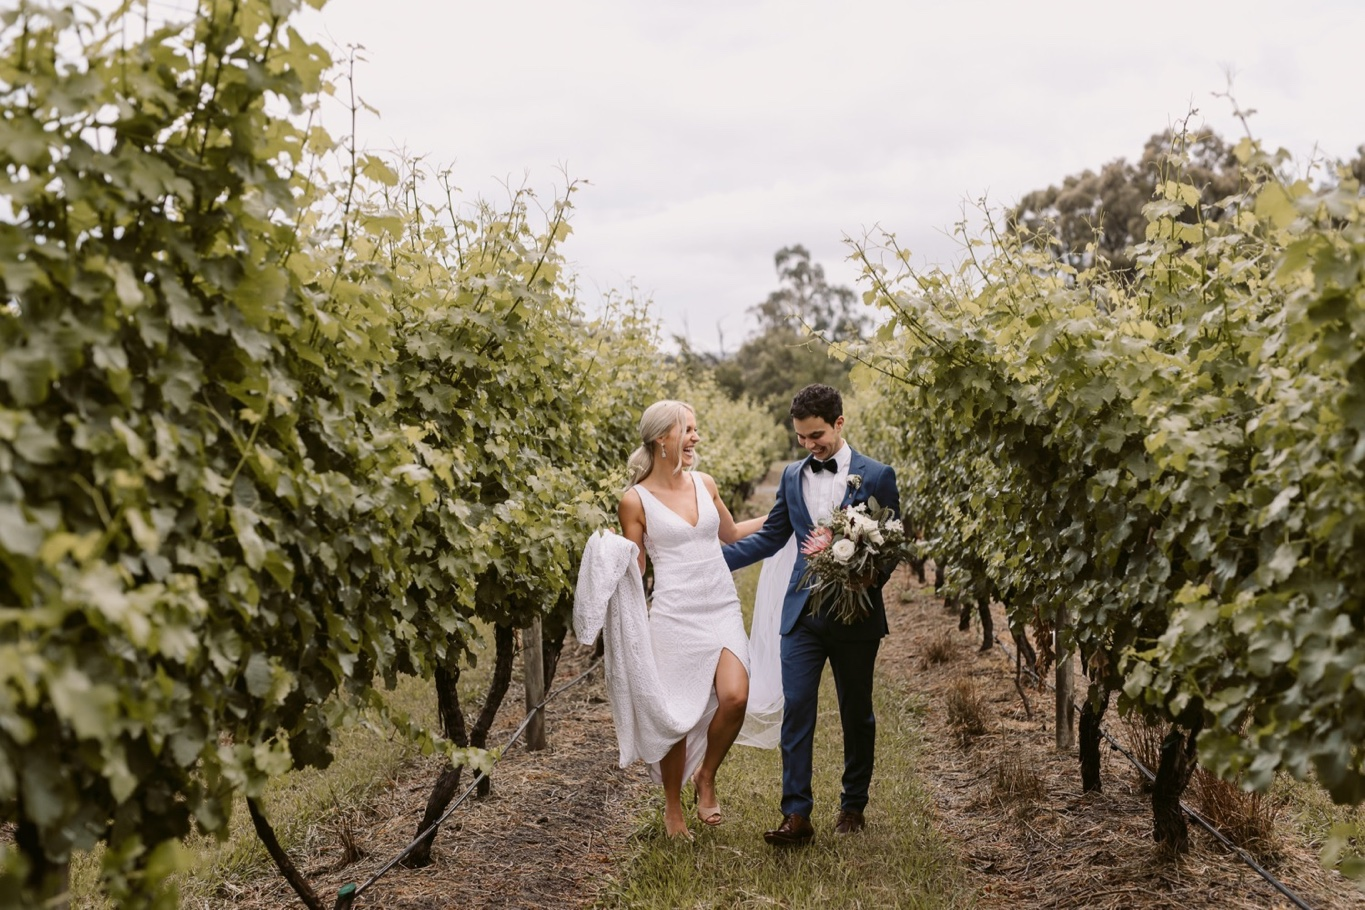 Immerse Yarra Valley Winery Wedding Photography78.jpg